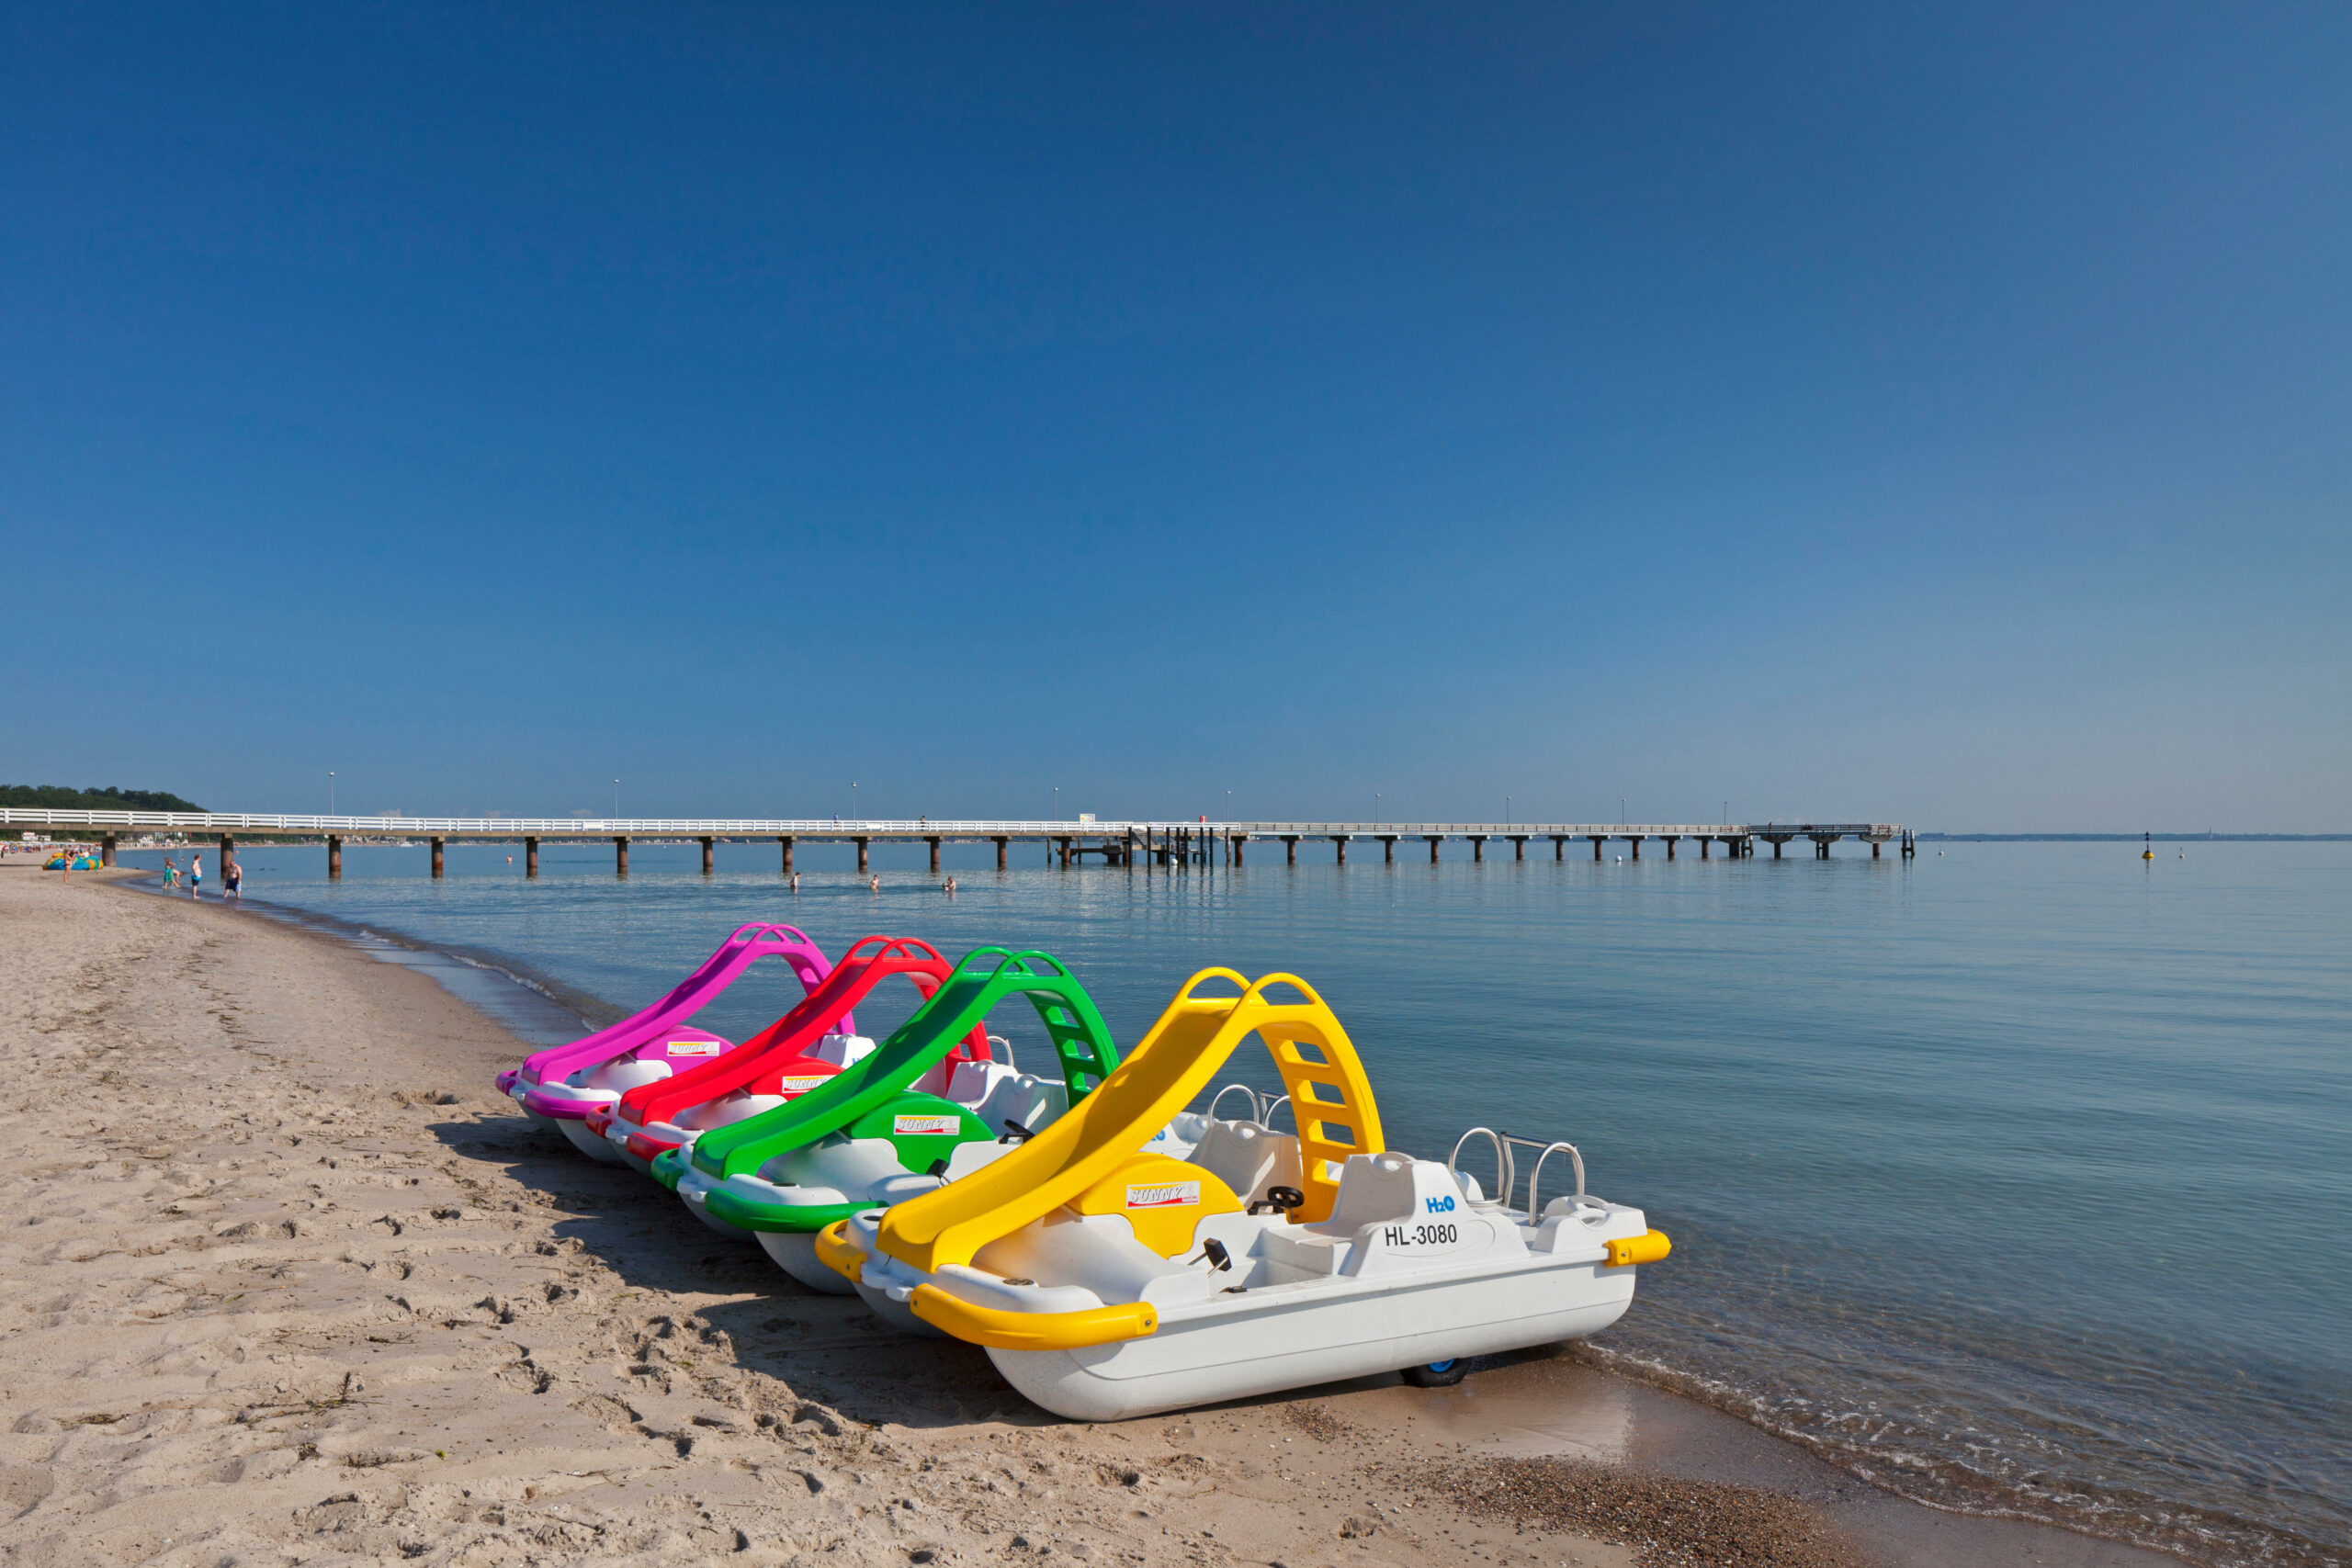 E4G5HC Pedal boats at Timmendorfer Strand / Timmendorf Beach along the Baltic Sea, Ostholstein, Schleswig-Holstein, Germany